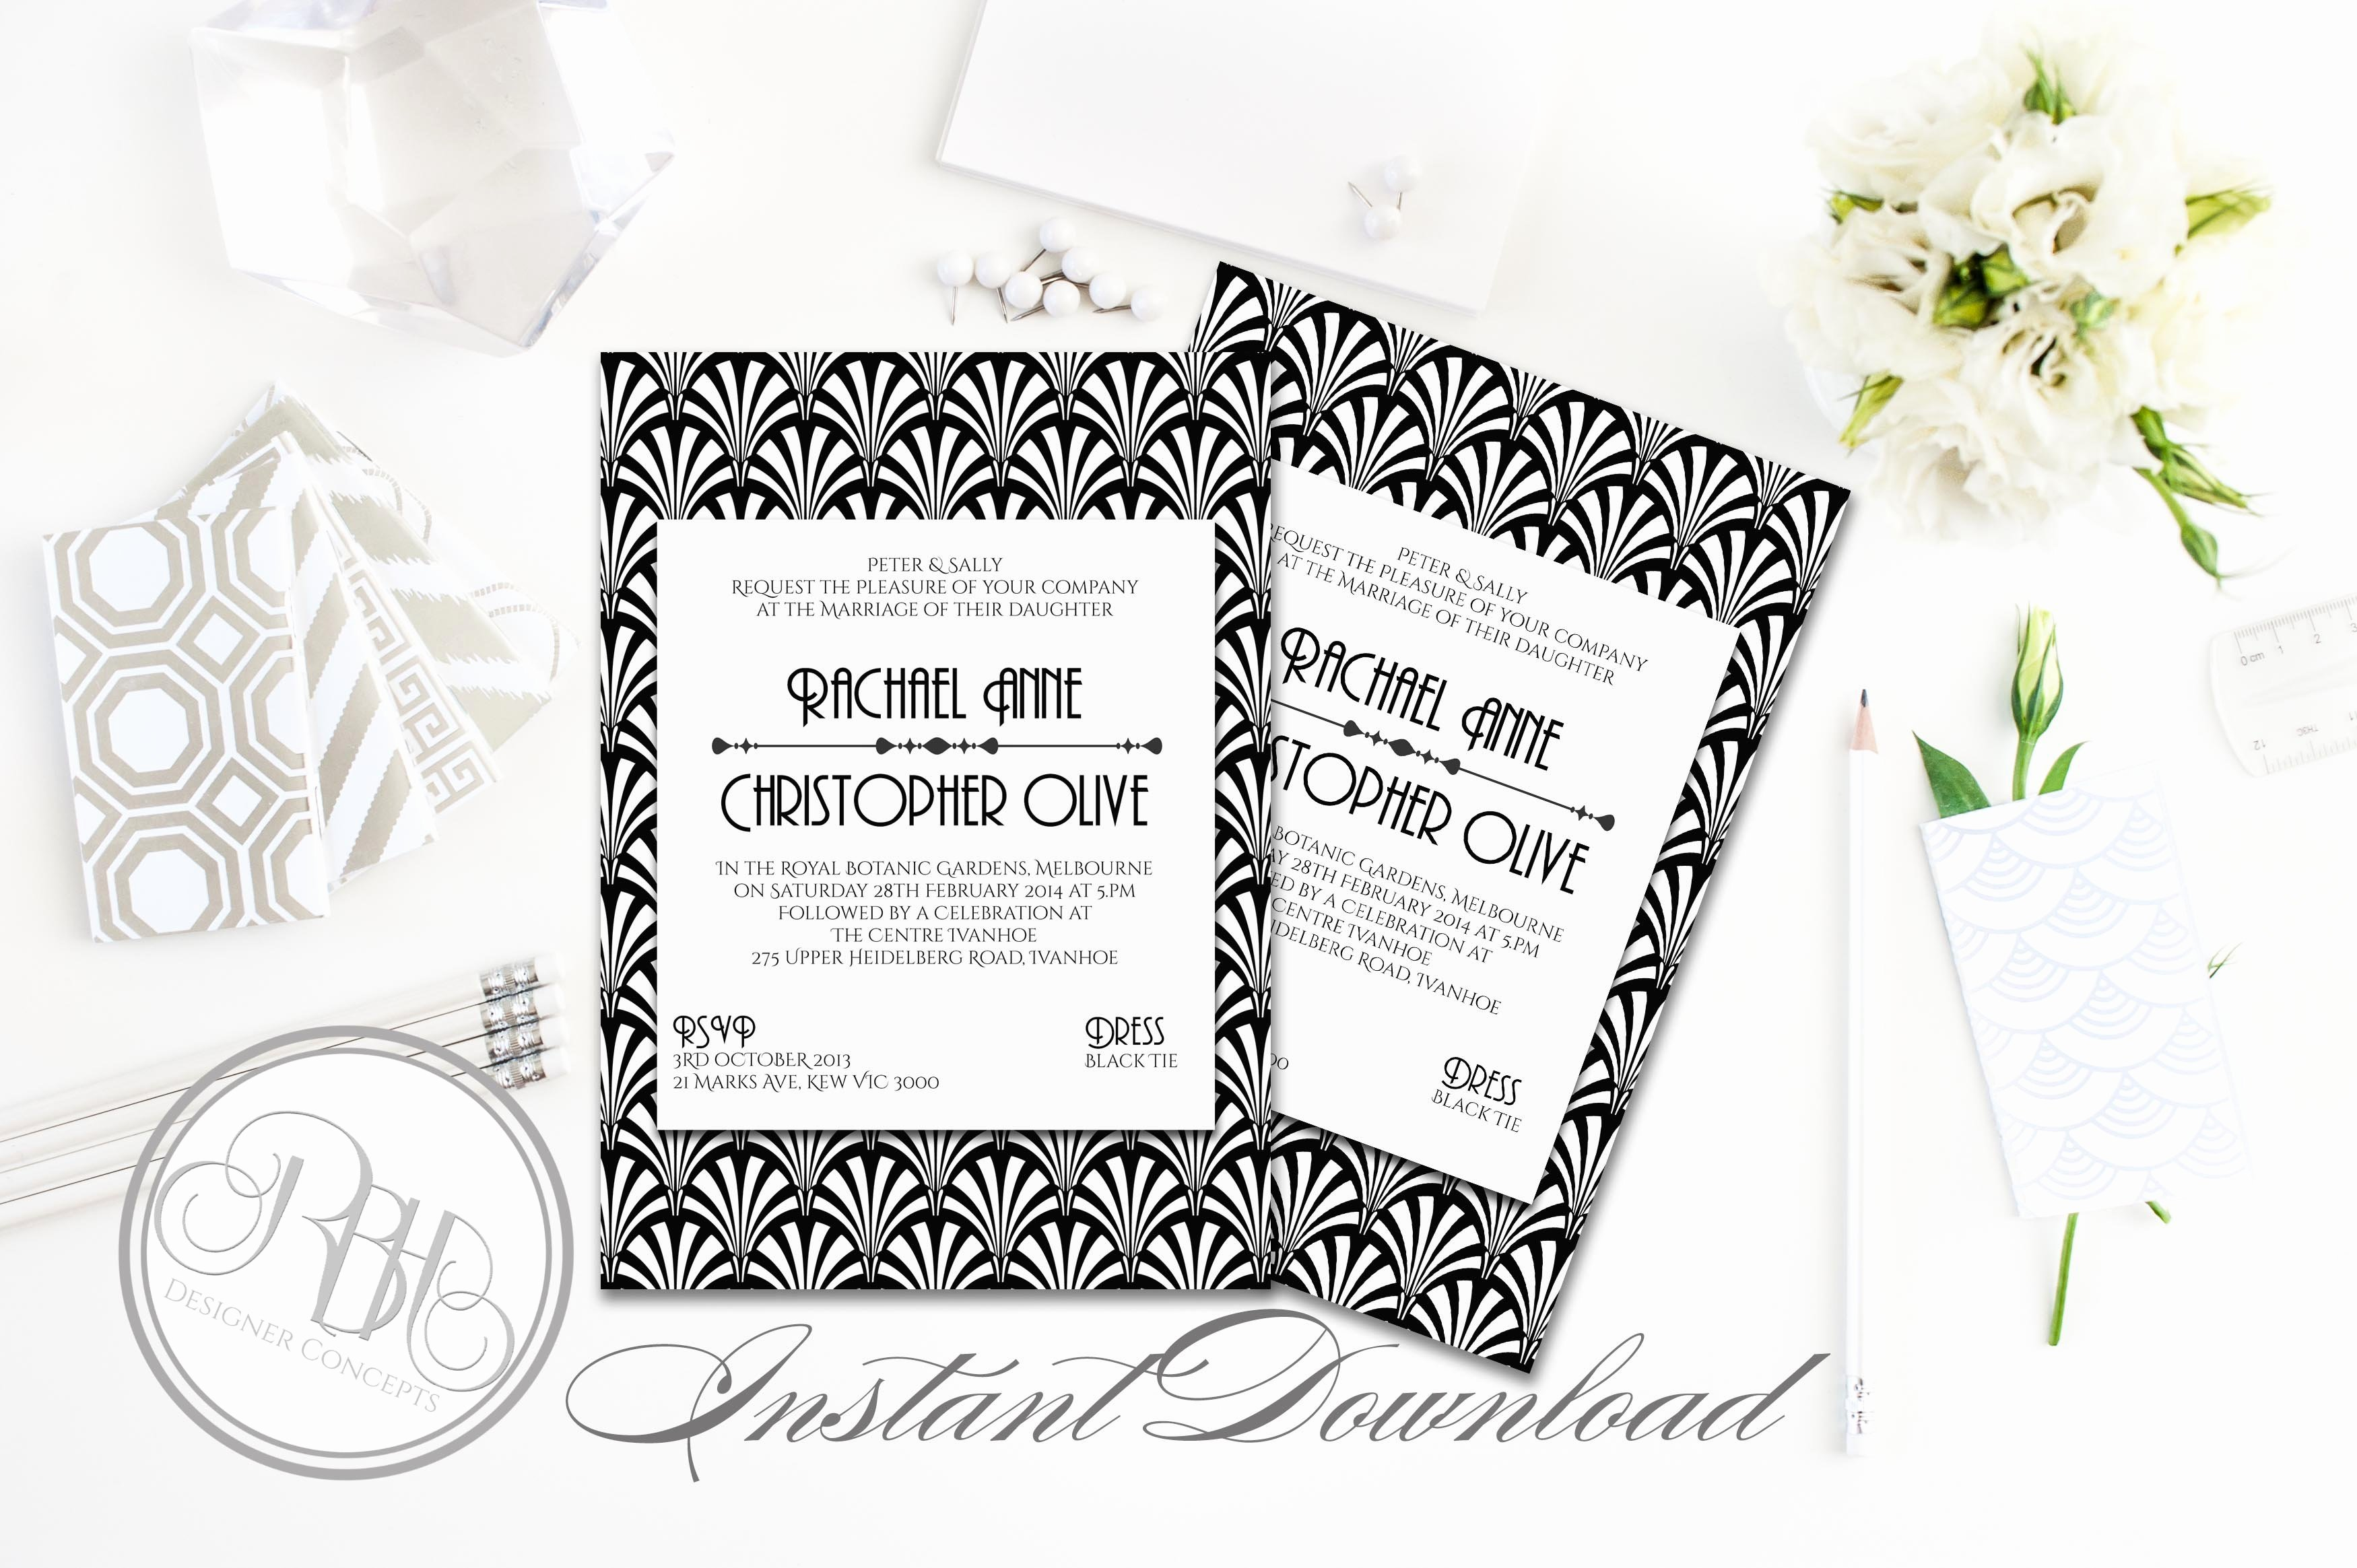 Art Deco Invitation Template Lovely Art Deco Wedding Invitation Sienna Wedding Templates